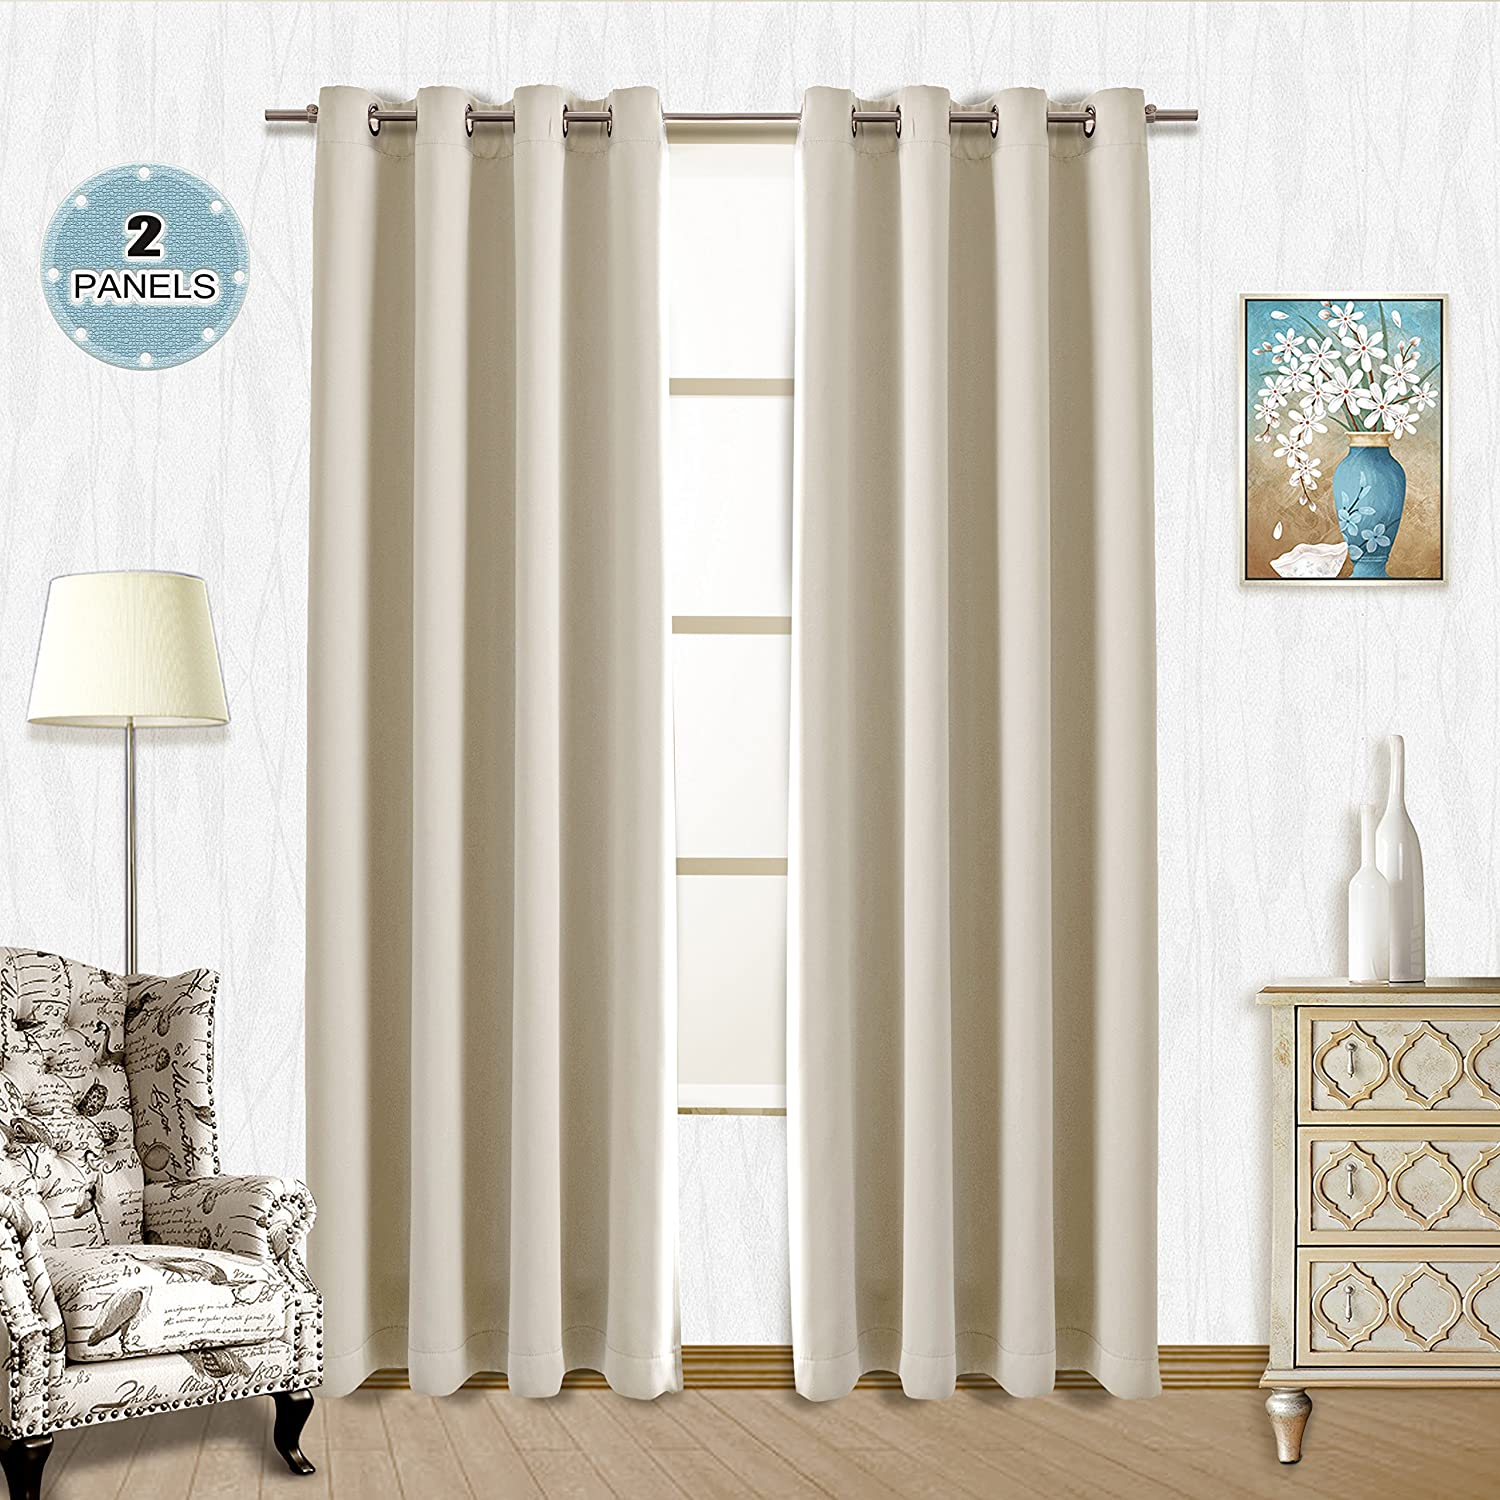 Vangao Room Darkening Thermal Insulated Blackout Curtains 2 Panels Beige